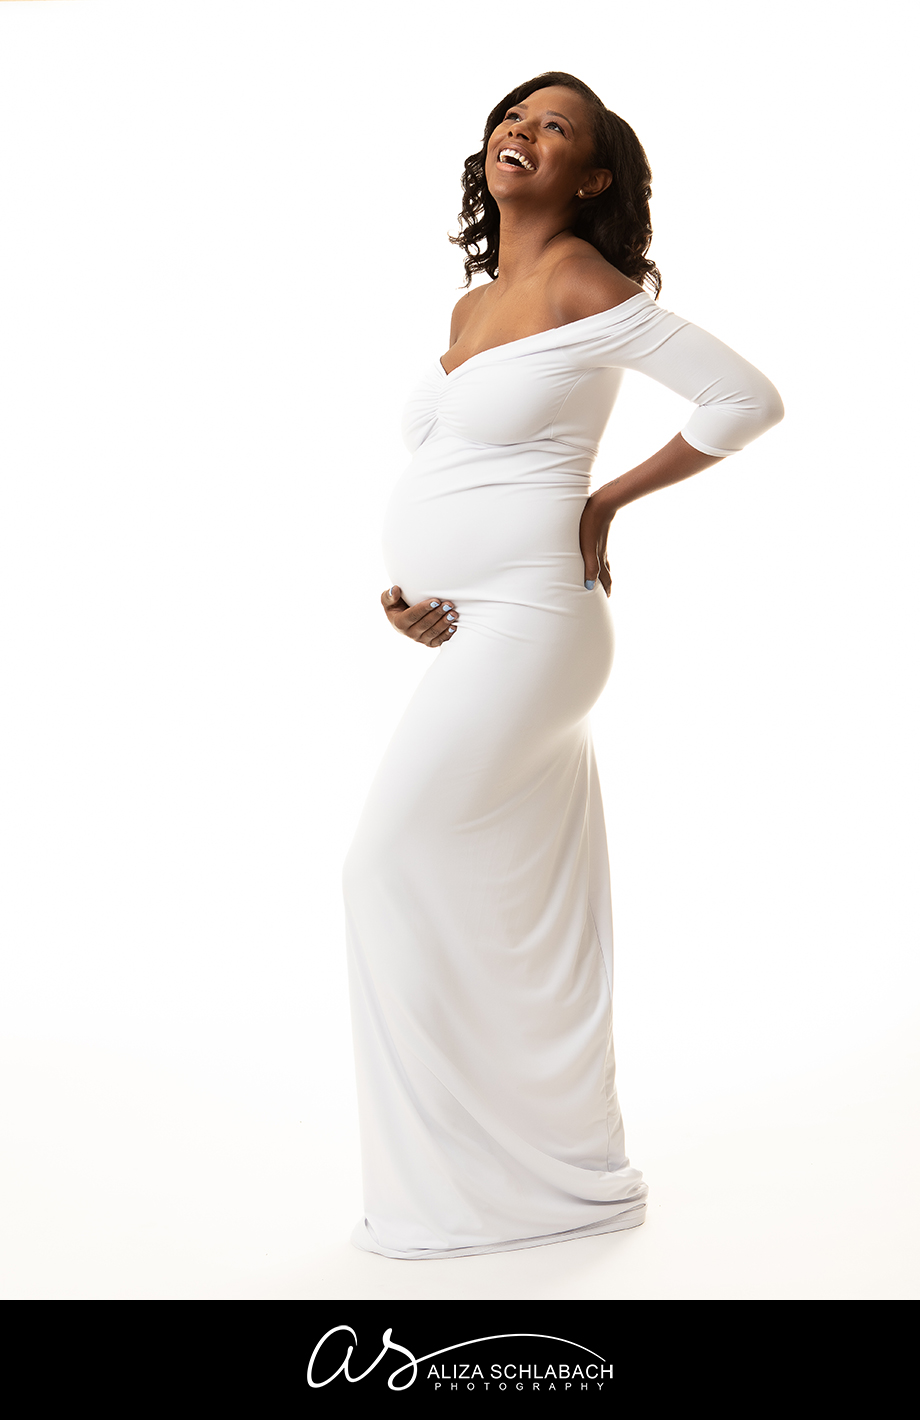 Stunning black pregnant woman in white gown